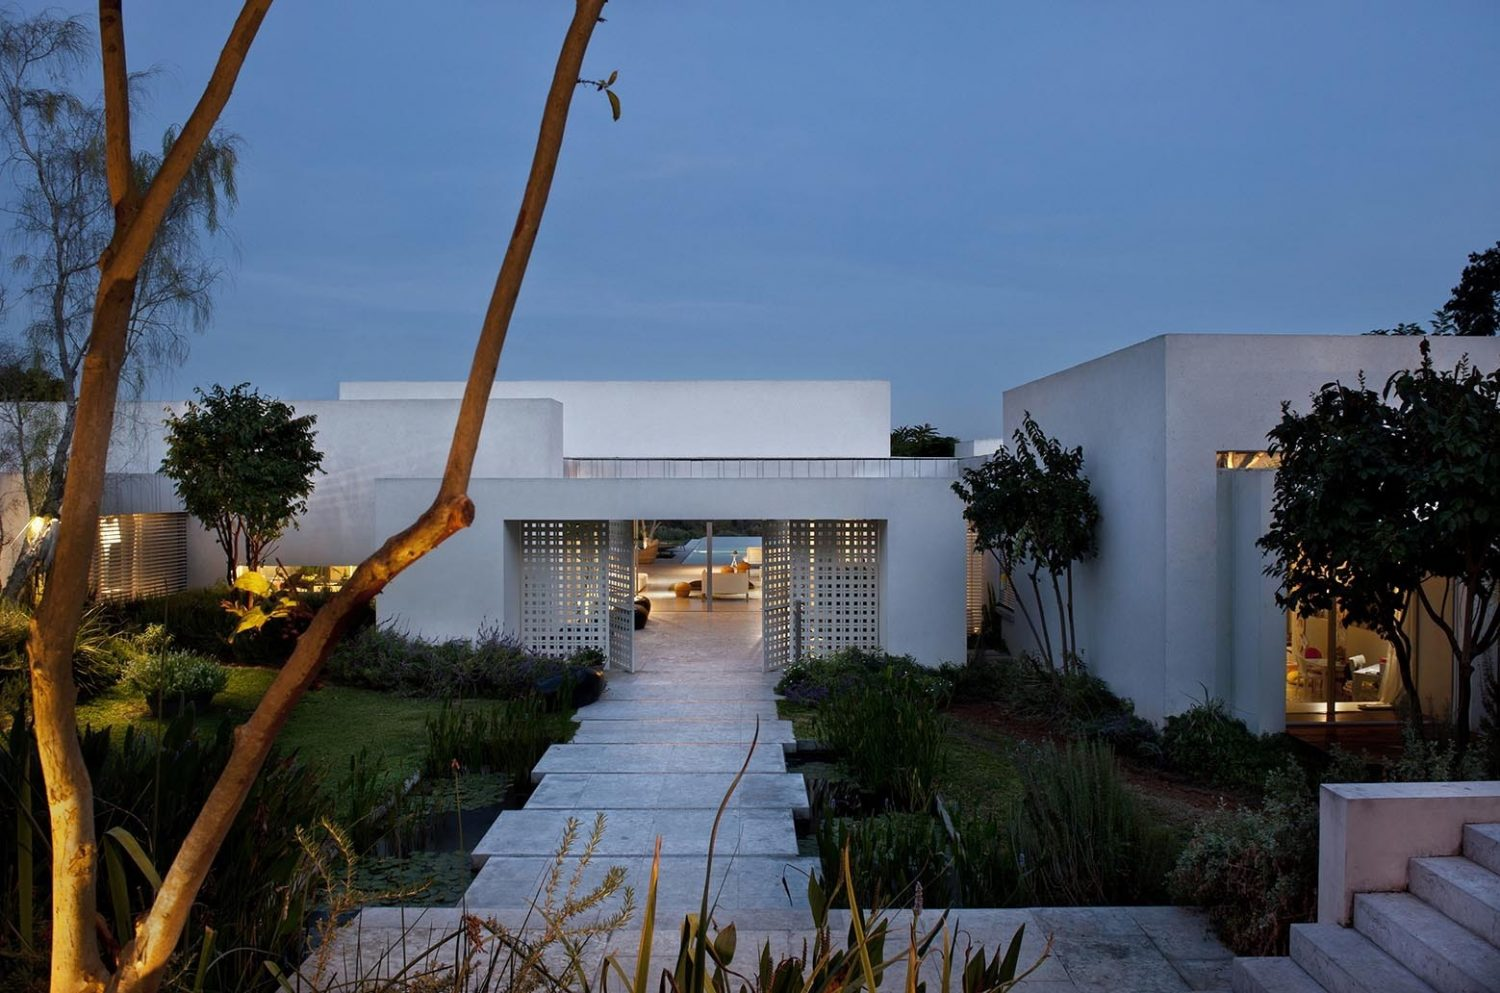 LA House by Eran Binderman and Rama Dotan